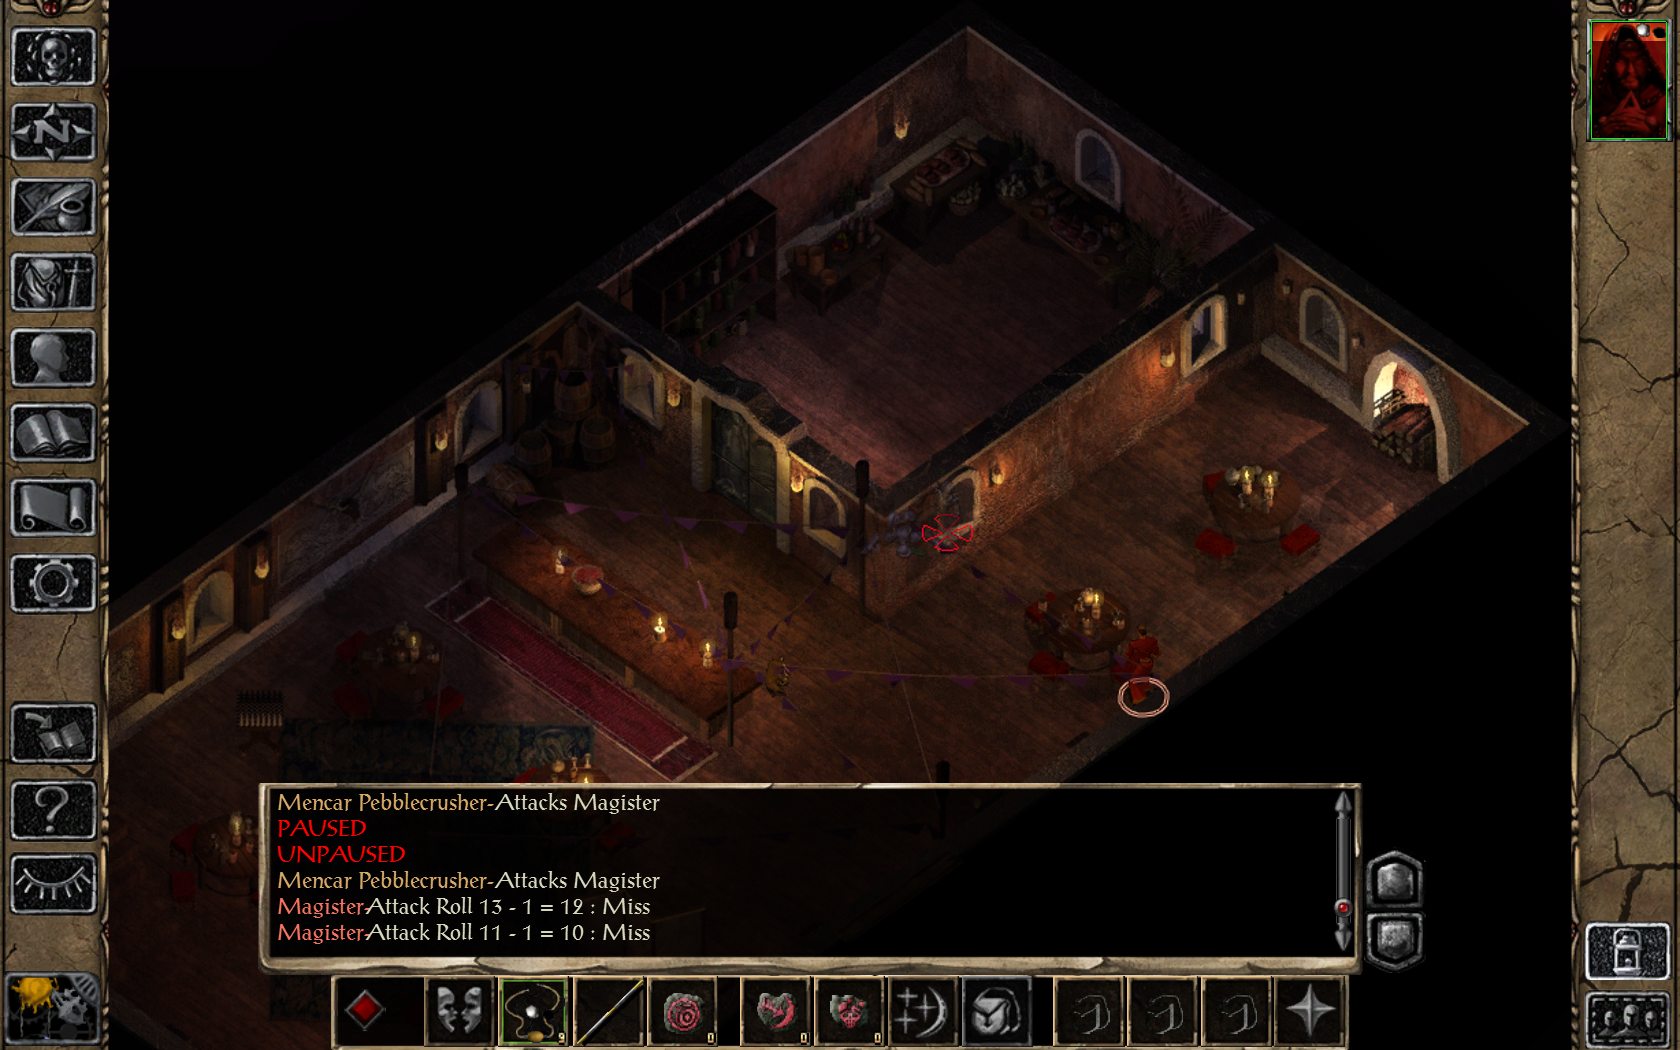 The only way a solo mage can kill Mencar Pebblecrusher: A locked room, a tiny window and 200 sling bullets.